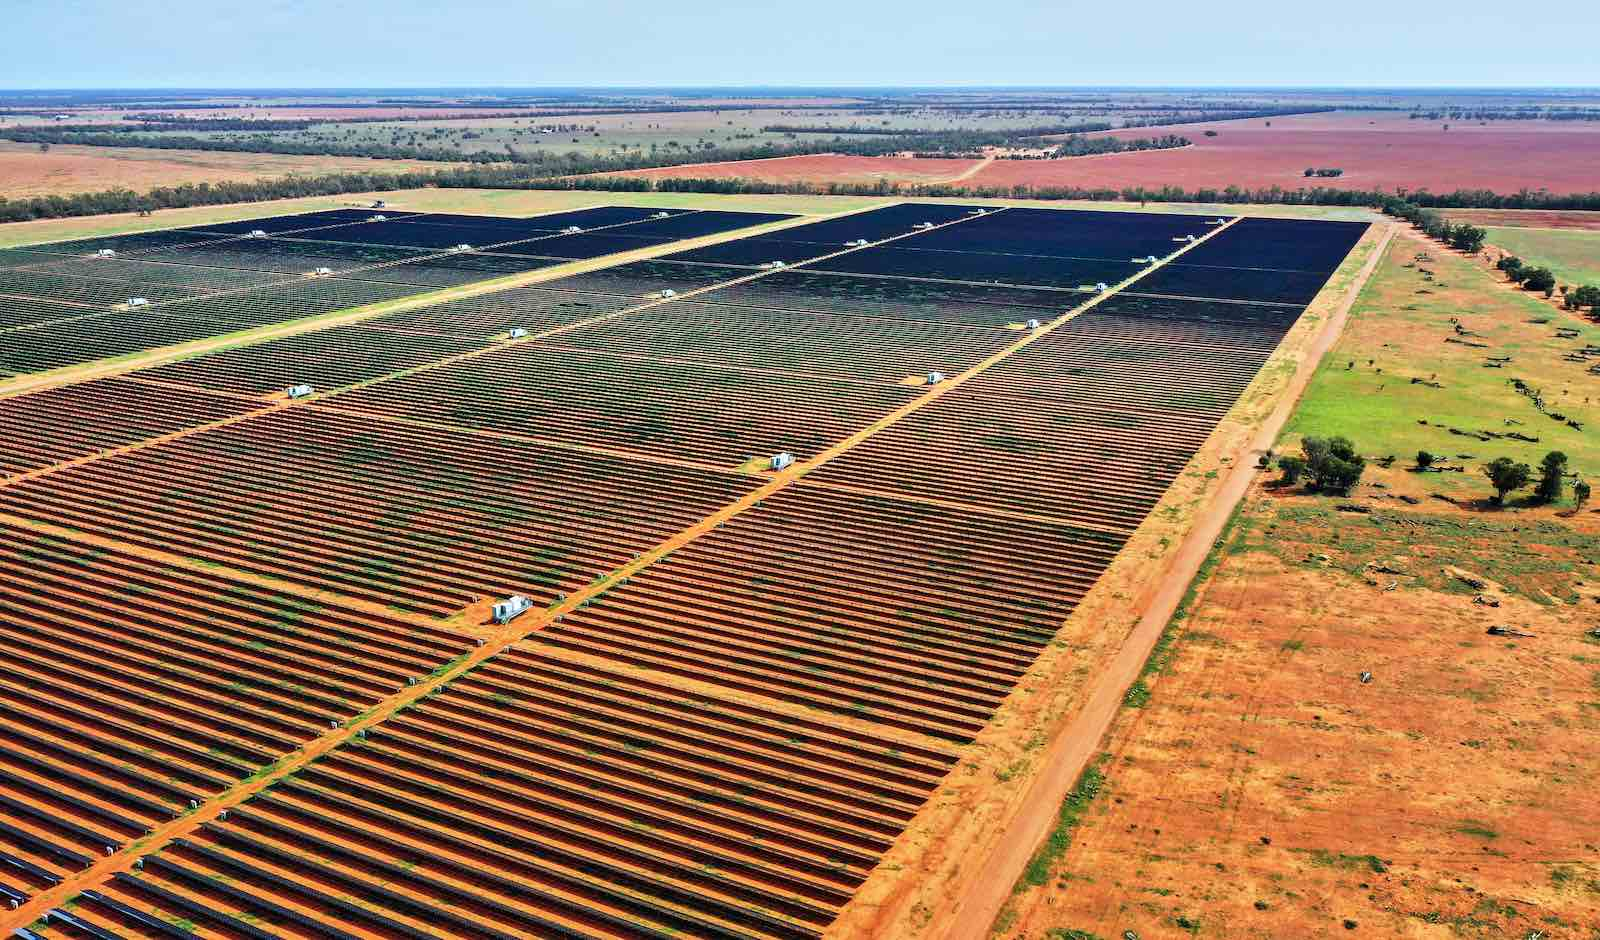 Solar farm in Nyngan, New South Wales (Andrew Merry/Getty Images)